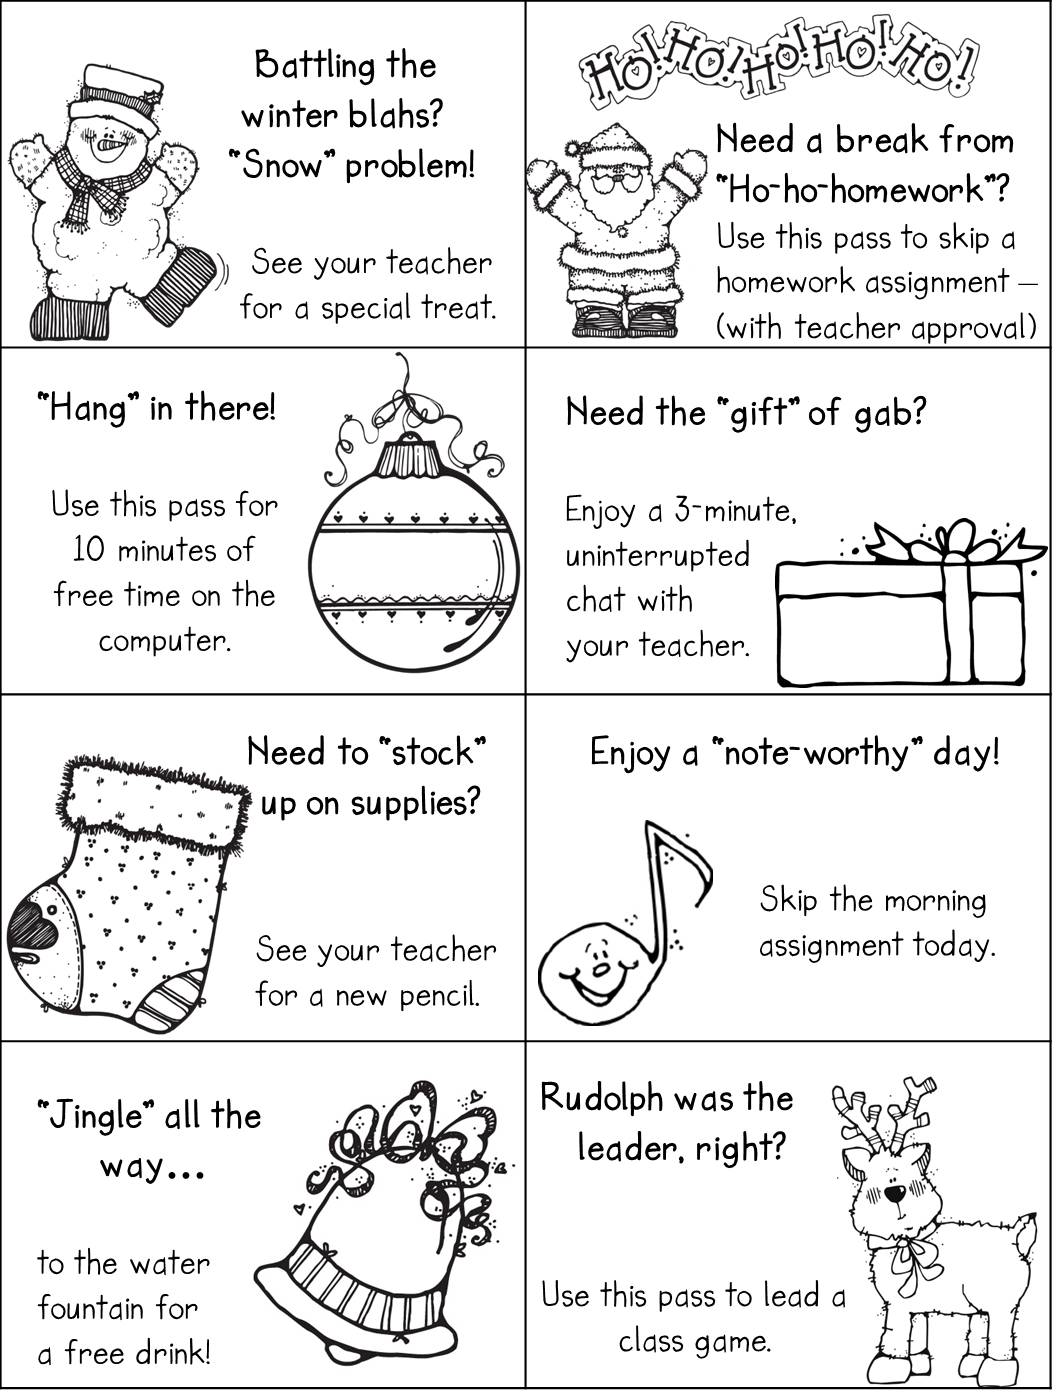 thw winter holiday homework 20 reasons you shouldn't assign homework over the holidays by miriam clifford many students agree that homework over the holidays really is a form of cruel and unusual punishment upon returning from winter break, you'll probably have a handful of students saying the dog ate their homework or it.